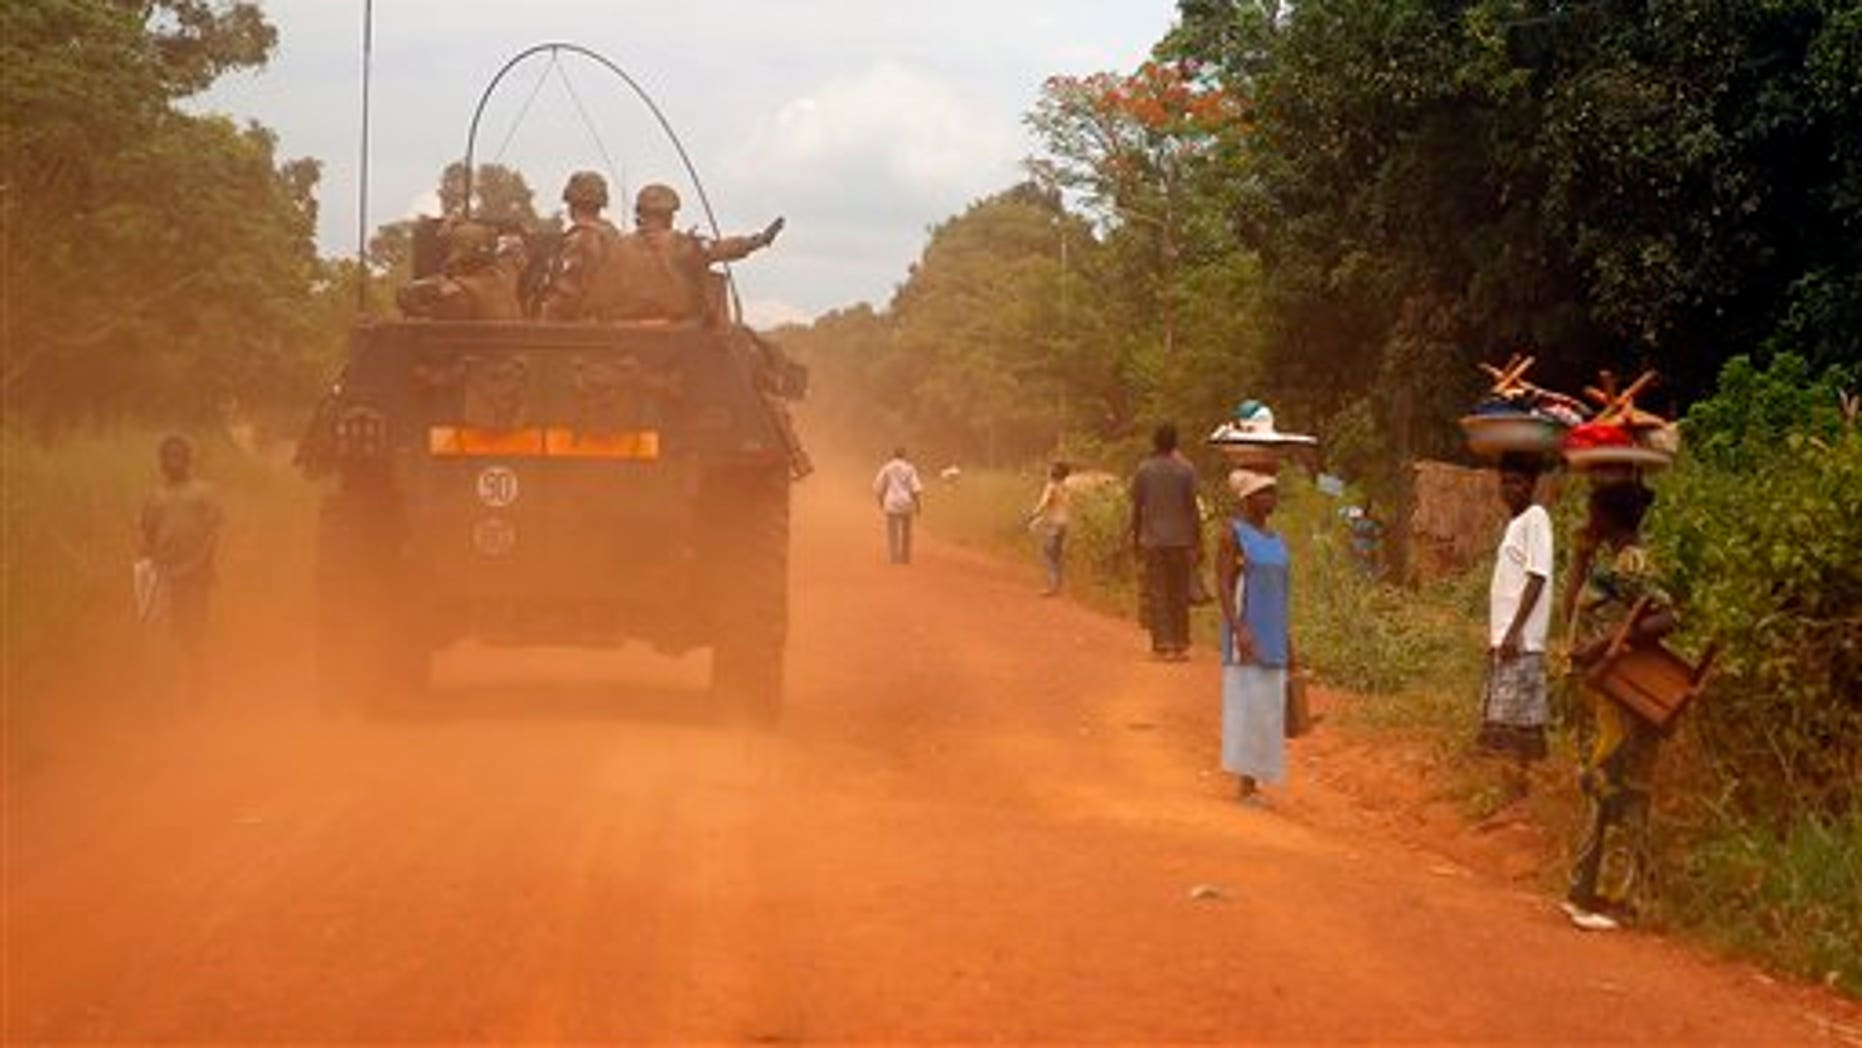 FILE - This April 11, 2014, image shows French forces patrolling in Sibut, some 140 miles northeast of Bangui, Central African Republic. French prosecutors and military authorities are investigating accusations that French soldiers in Central African Republic sexually abused children they were sent to protect. (AP Photo/Jerome Delay, File)